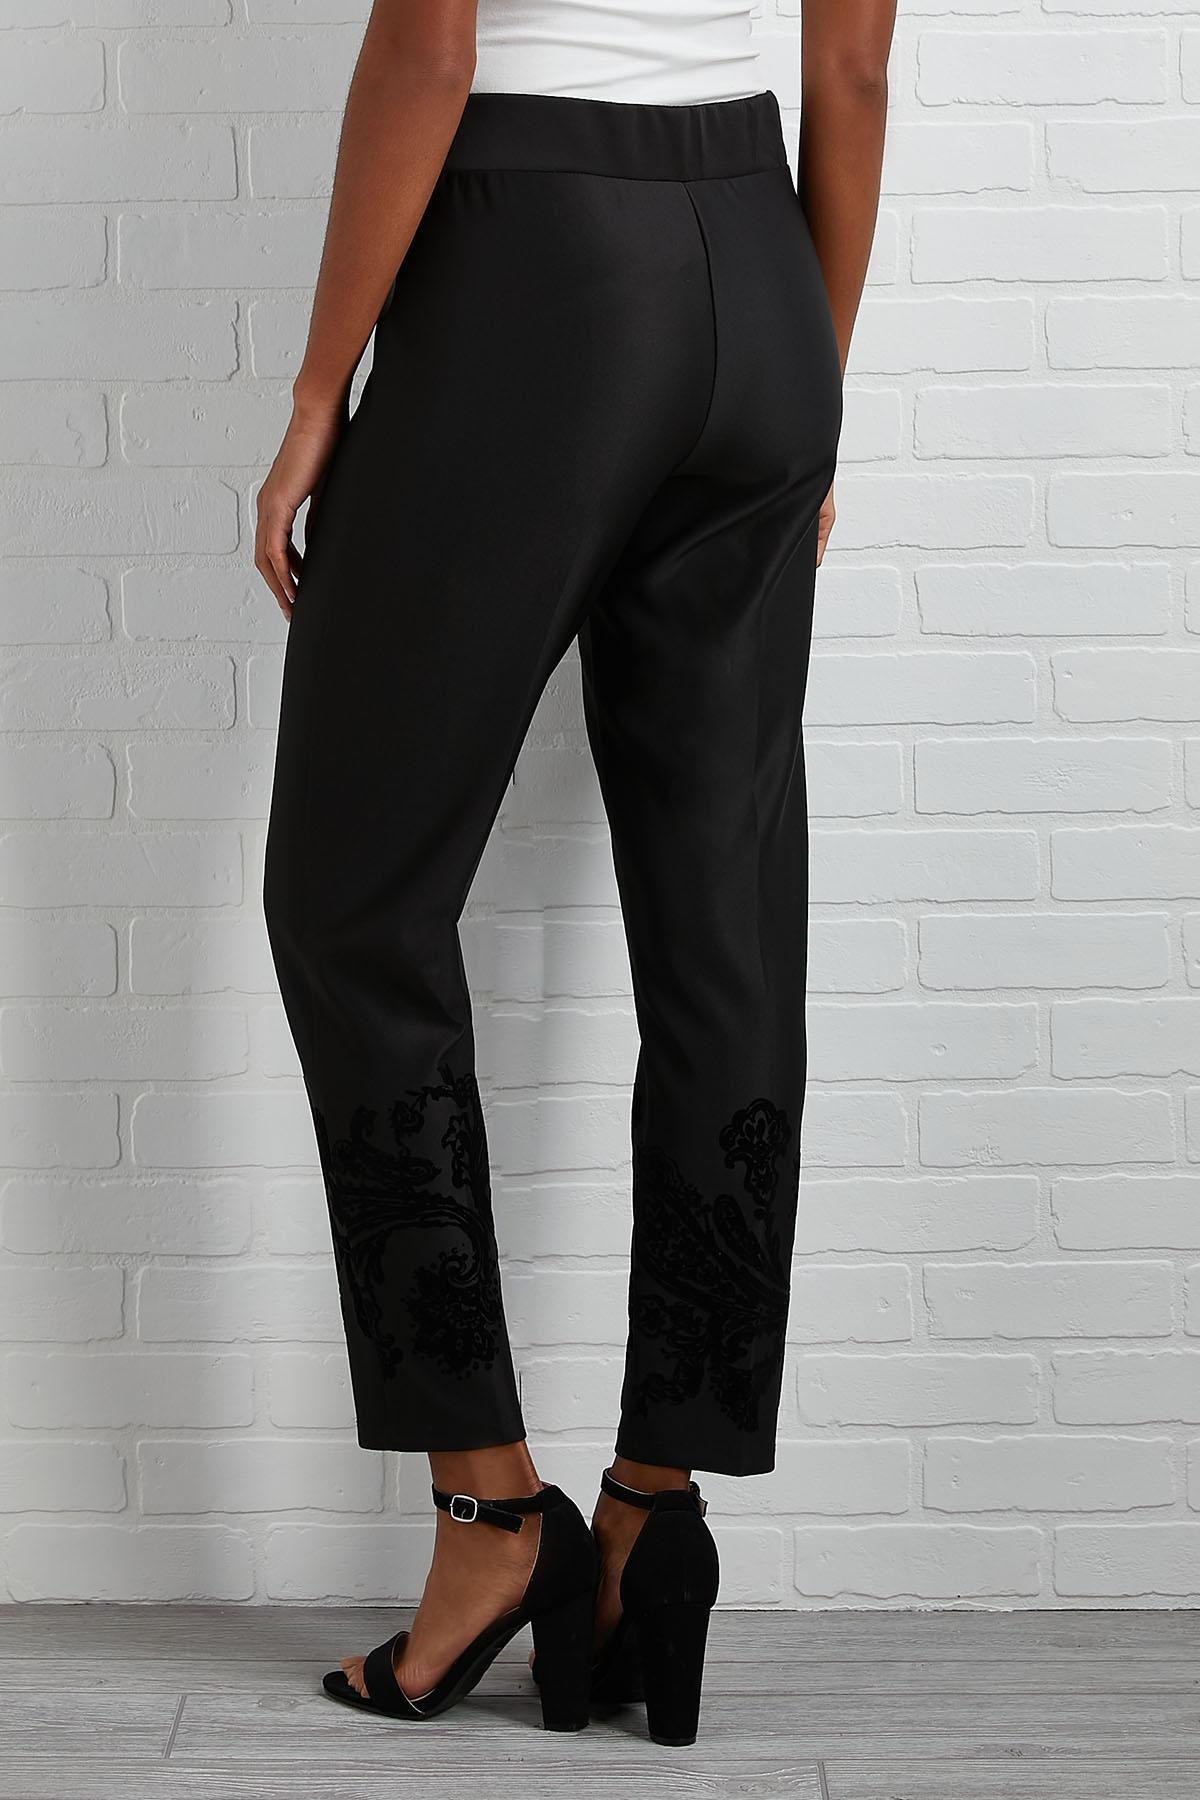 Flocked Black Pants